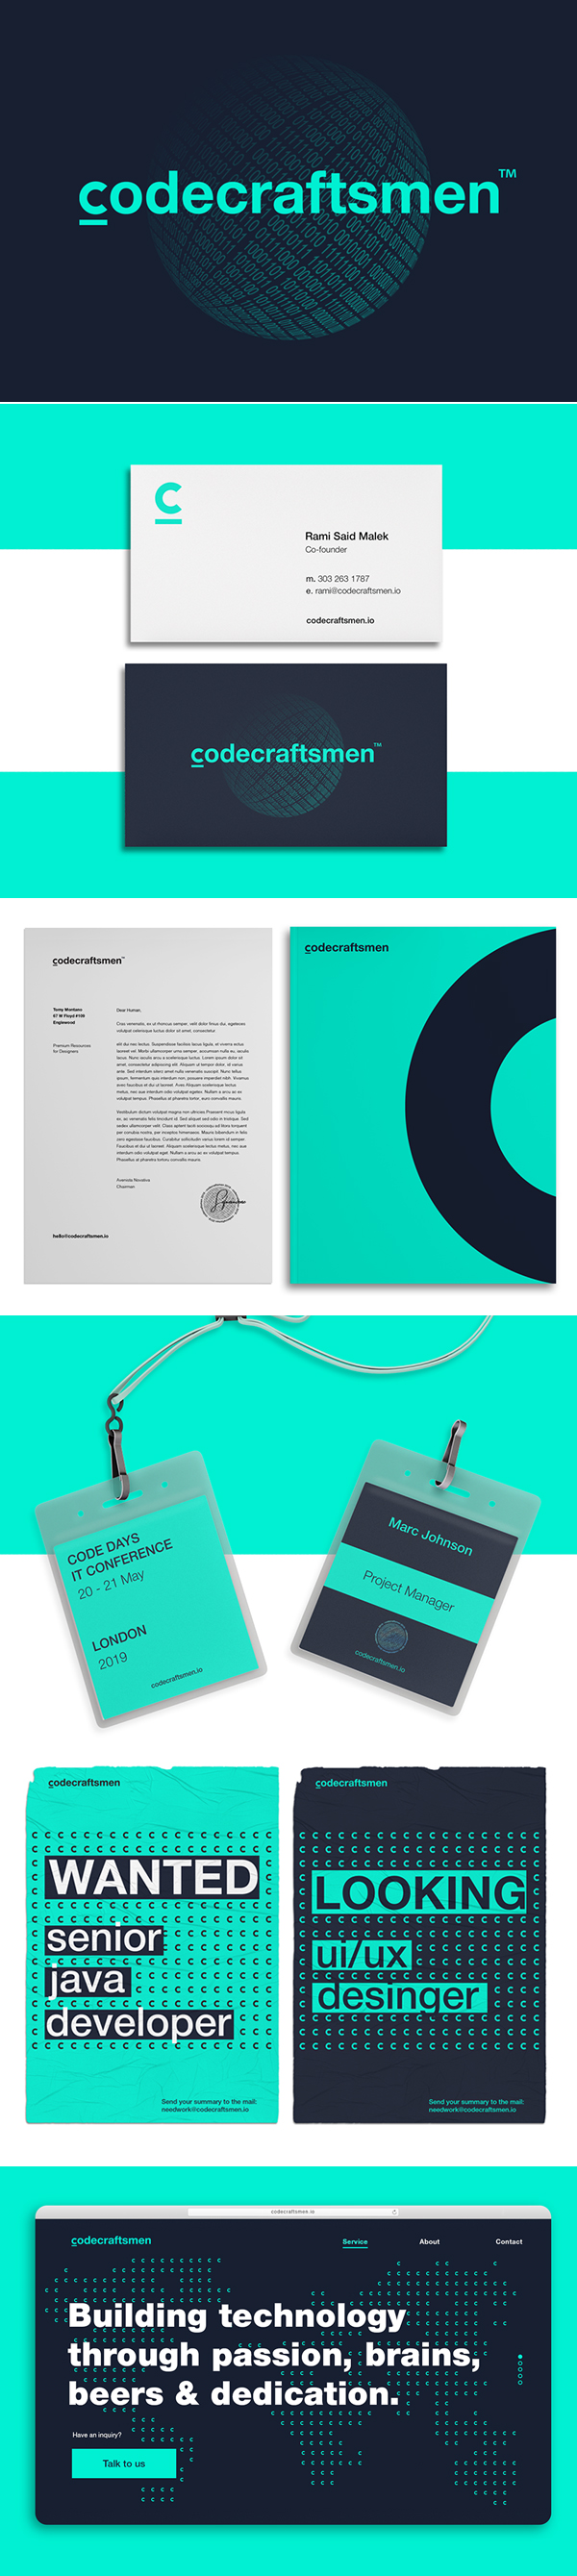 Branding: CodeCraftsmen Branding and Website by Kir.Ko Team